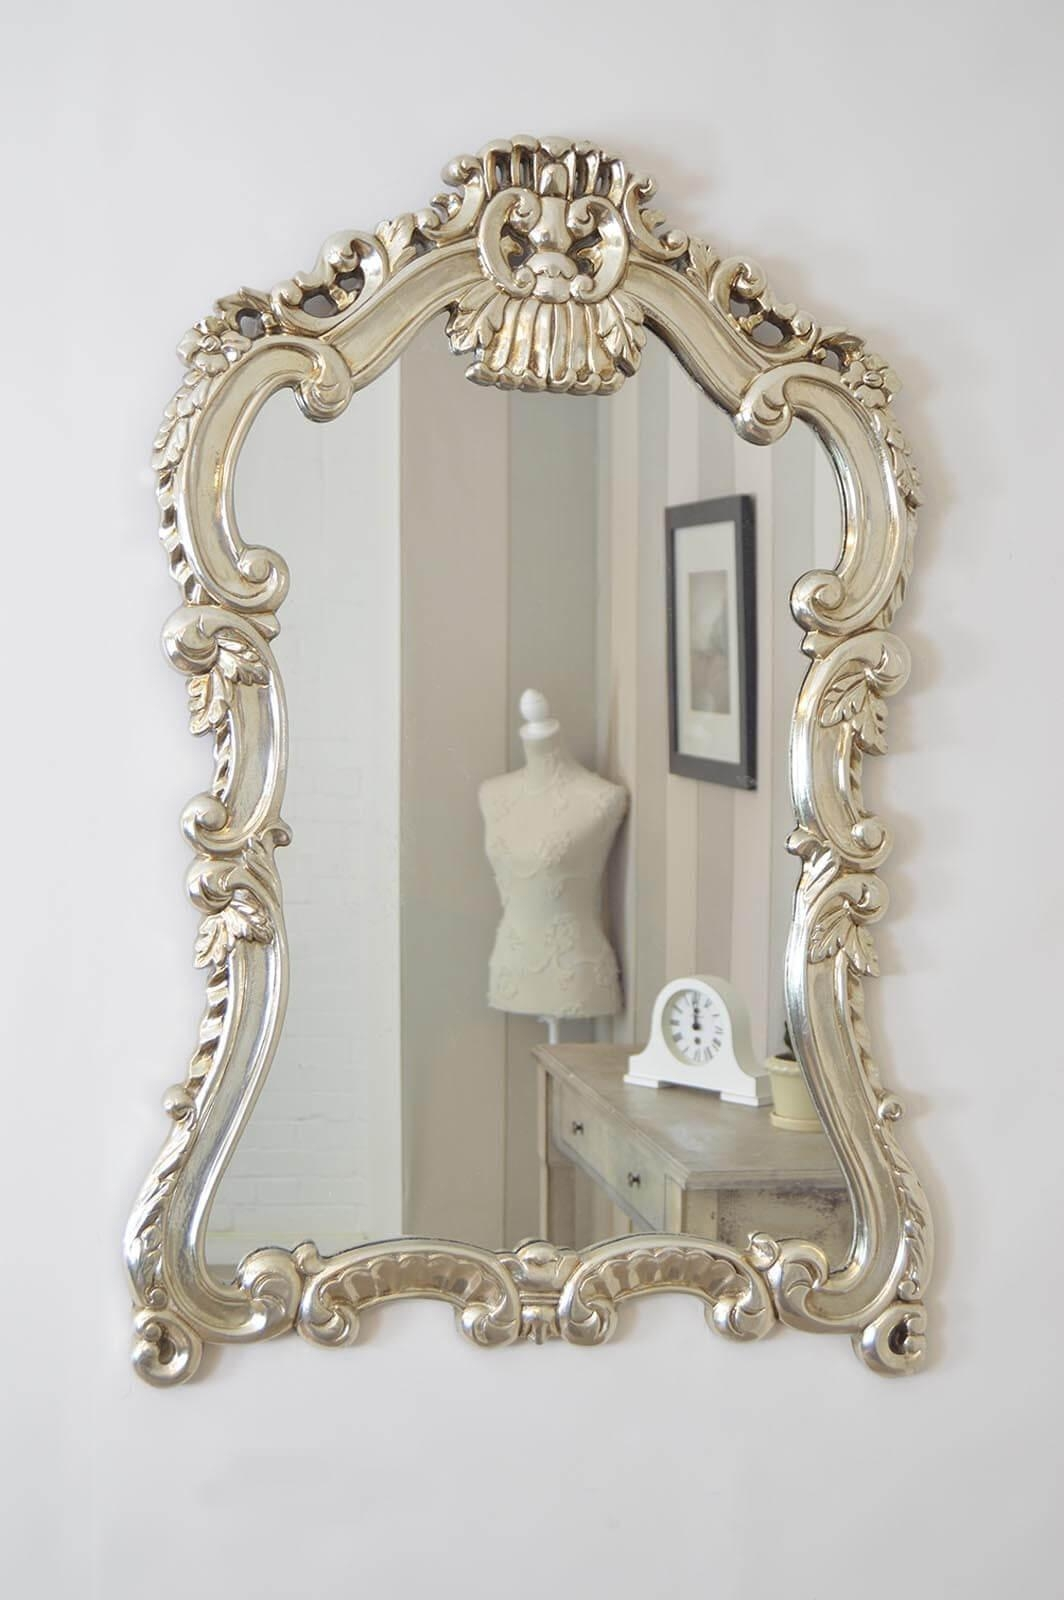 Decorative Ornate Mirrors : Wall Vs Floor, Which One Better Regarding Ornate Mirrors For Sale (Image 5 of 20)